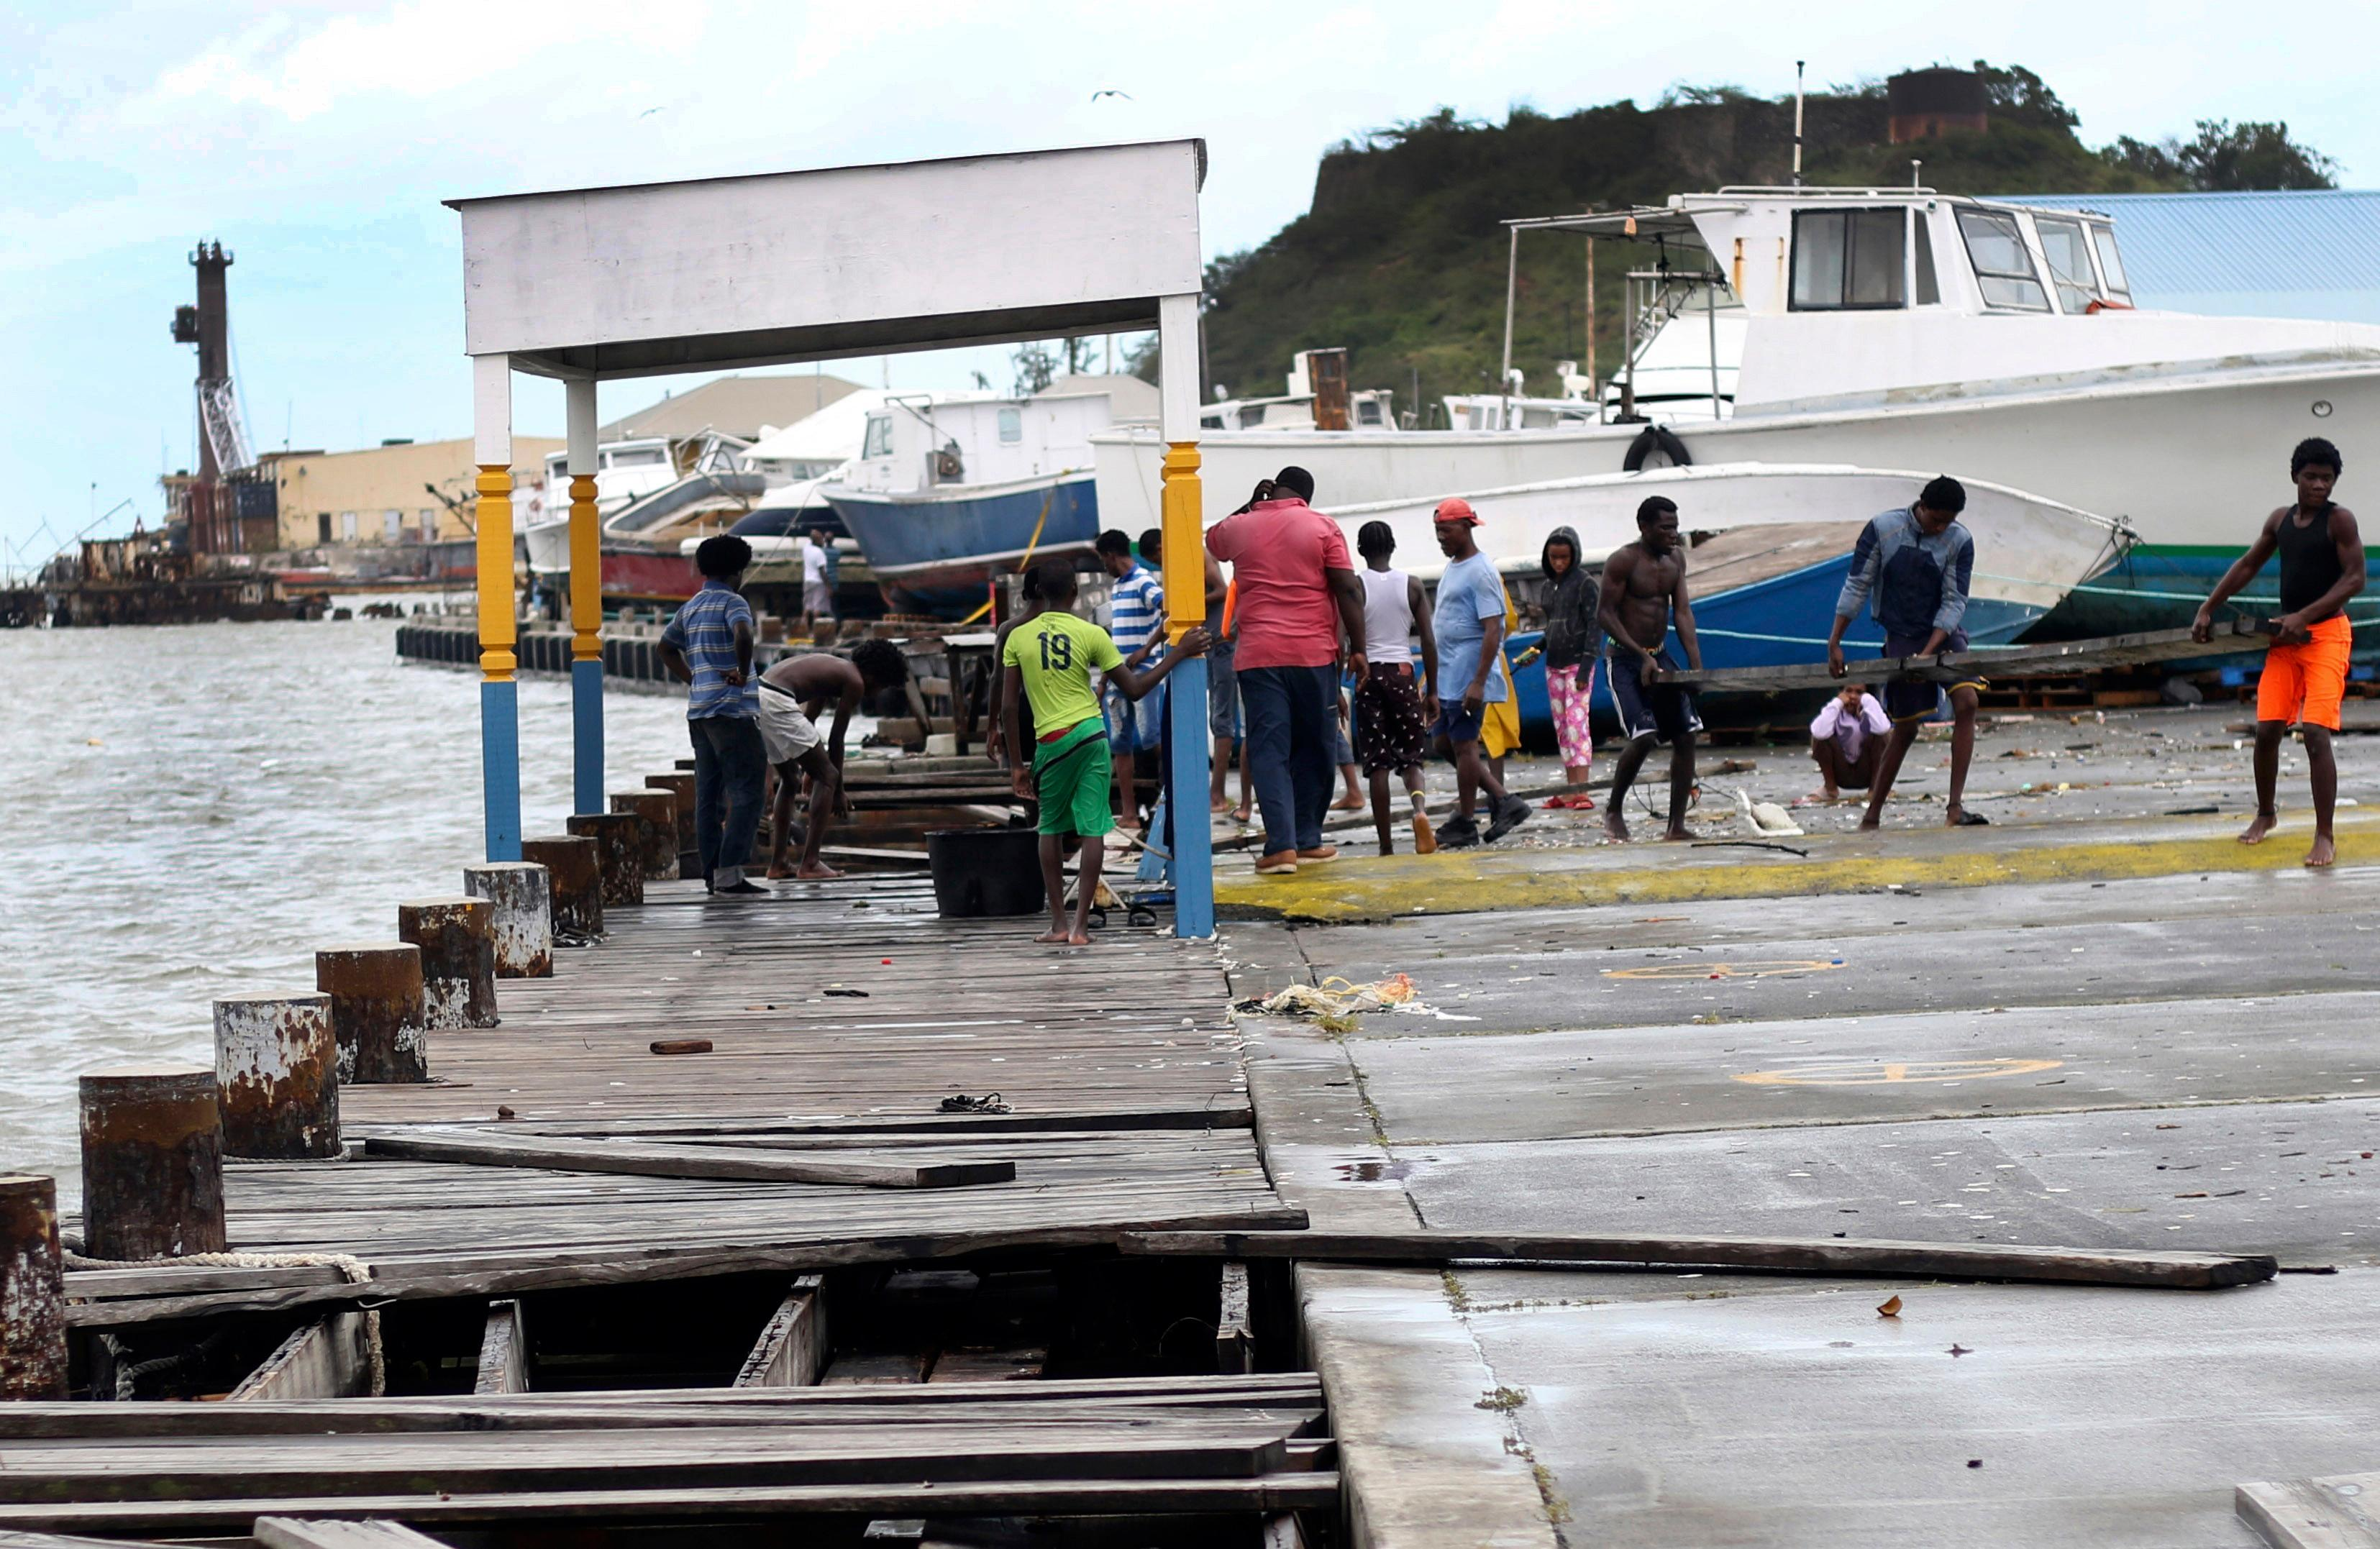 People recover broken parts of the dock after the passing of Hurricane Irma, in St. John's, Antigua and Barbuda, Wednesday, Sept. 6, 2017. Heavy rain and 185-mph winds lashed the Virgin Islands and Puerto Rico's northeast coast as Irma, the strongest Atlantic Ocean hurricane ever measured, roared through Caribbean islands on its way to a possible hit on South Florida. (AP Photo/Johnny Jno-Baptiste)